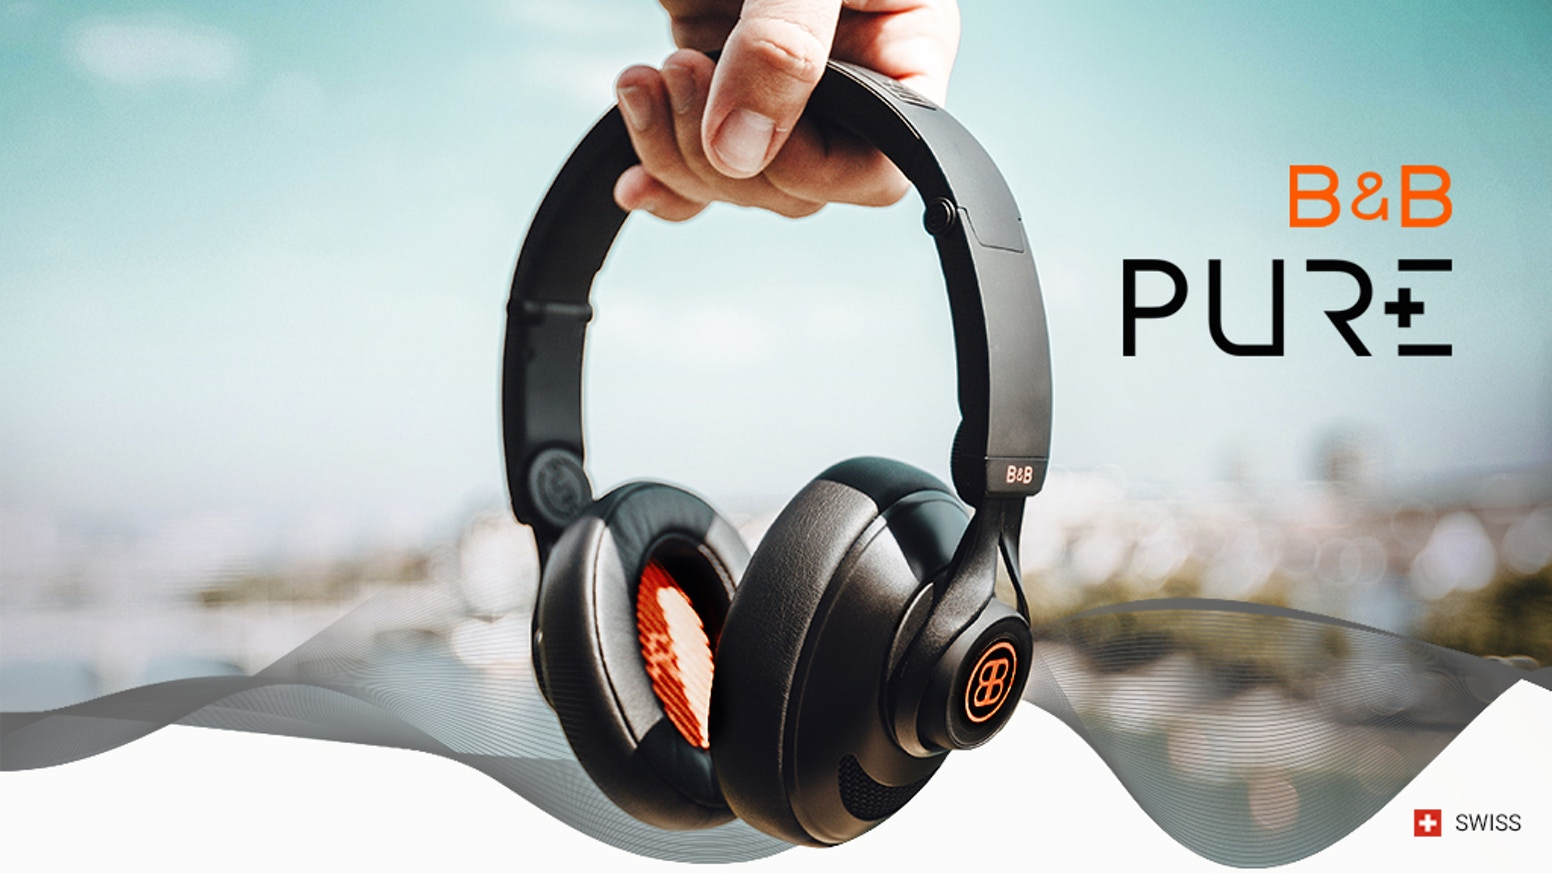 The innovative and customizable headphone that adjusts to you.